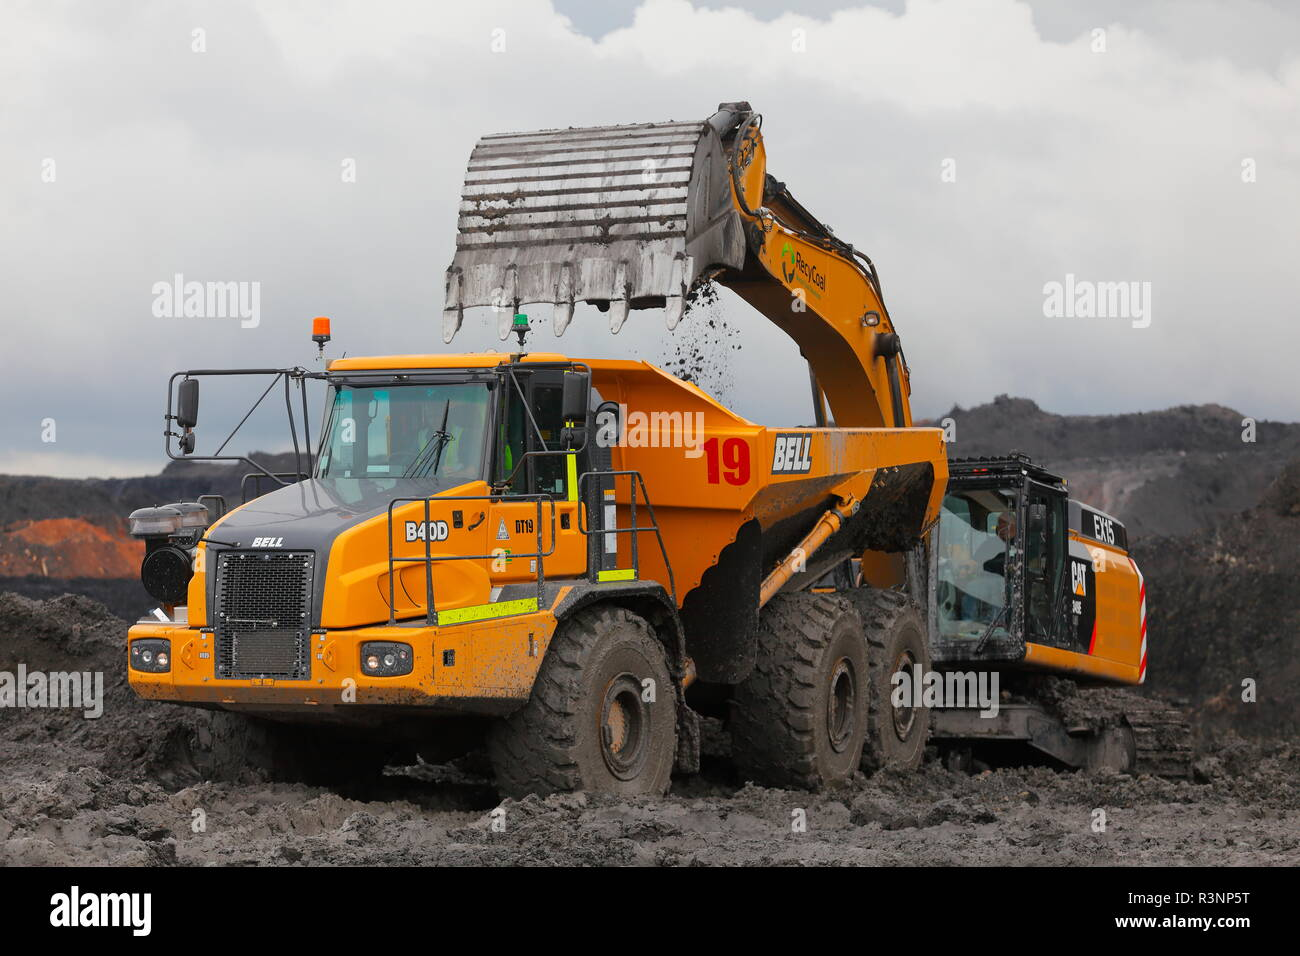 Bell Trucks Stock Photos & Bell Trucks Stock Images - Alamy